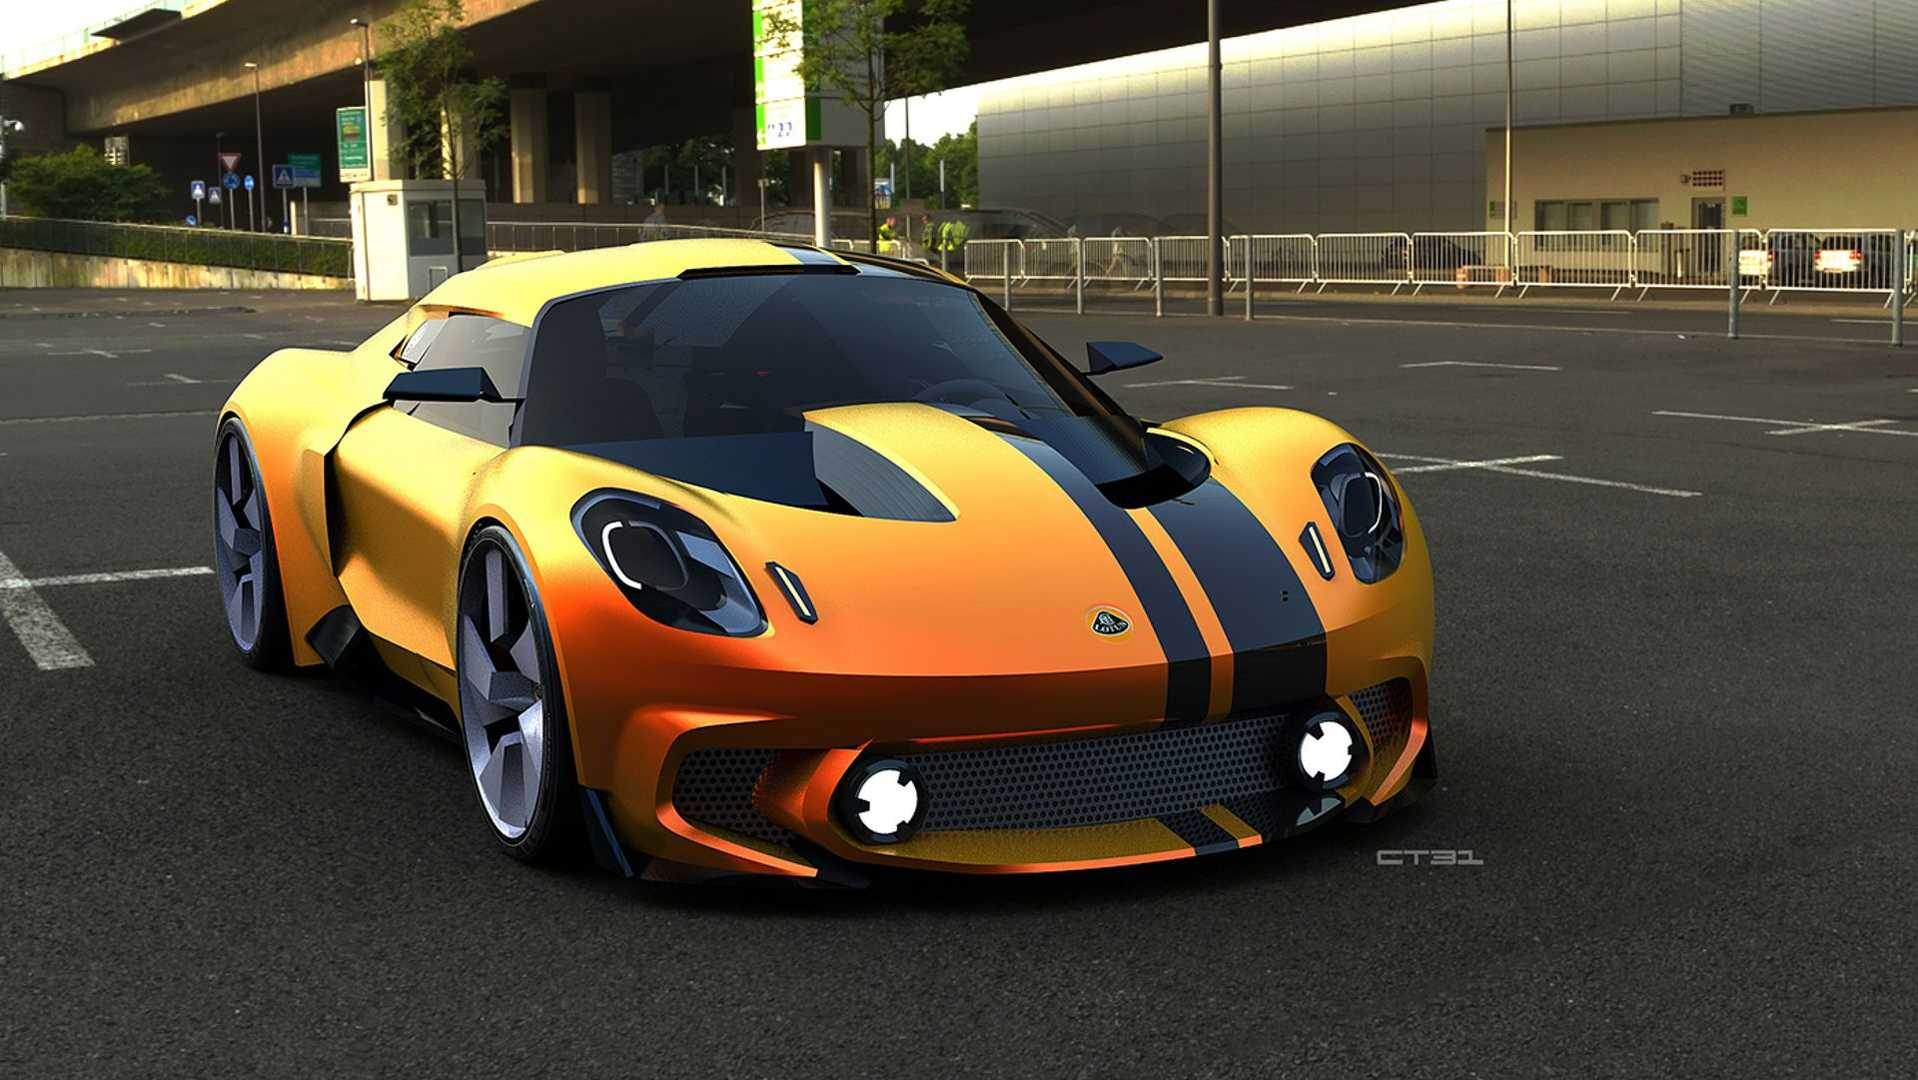 96 The Best 2020 Lotus Exige Price Design and Review